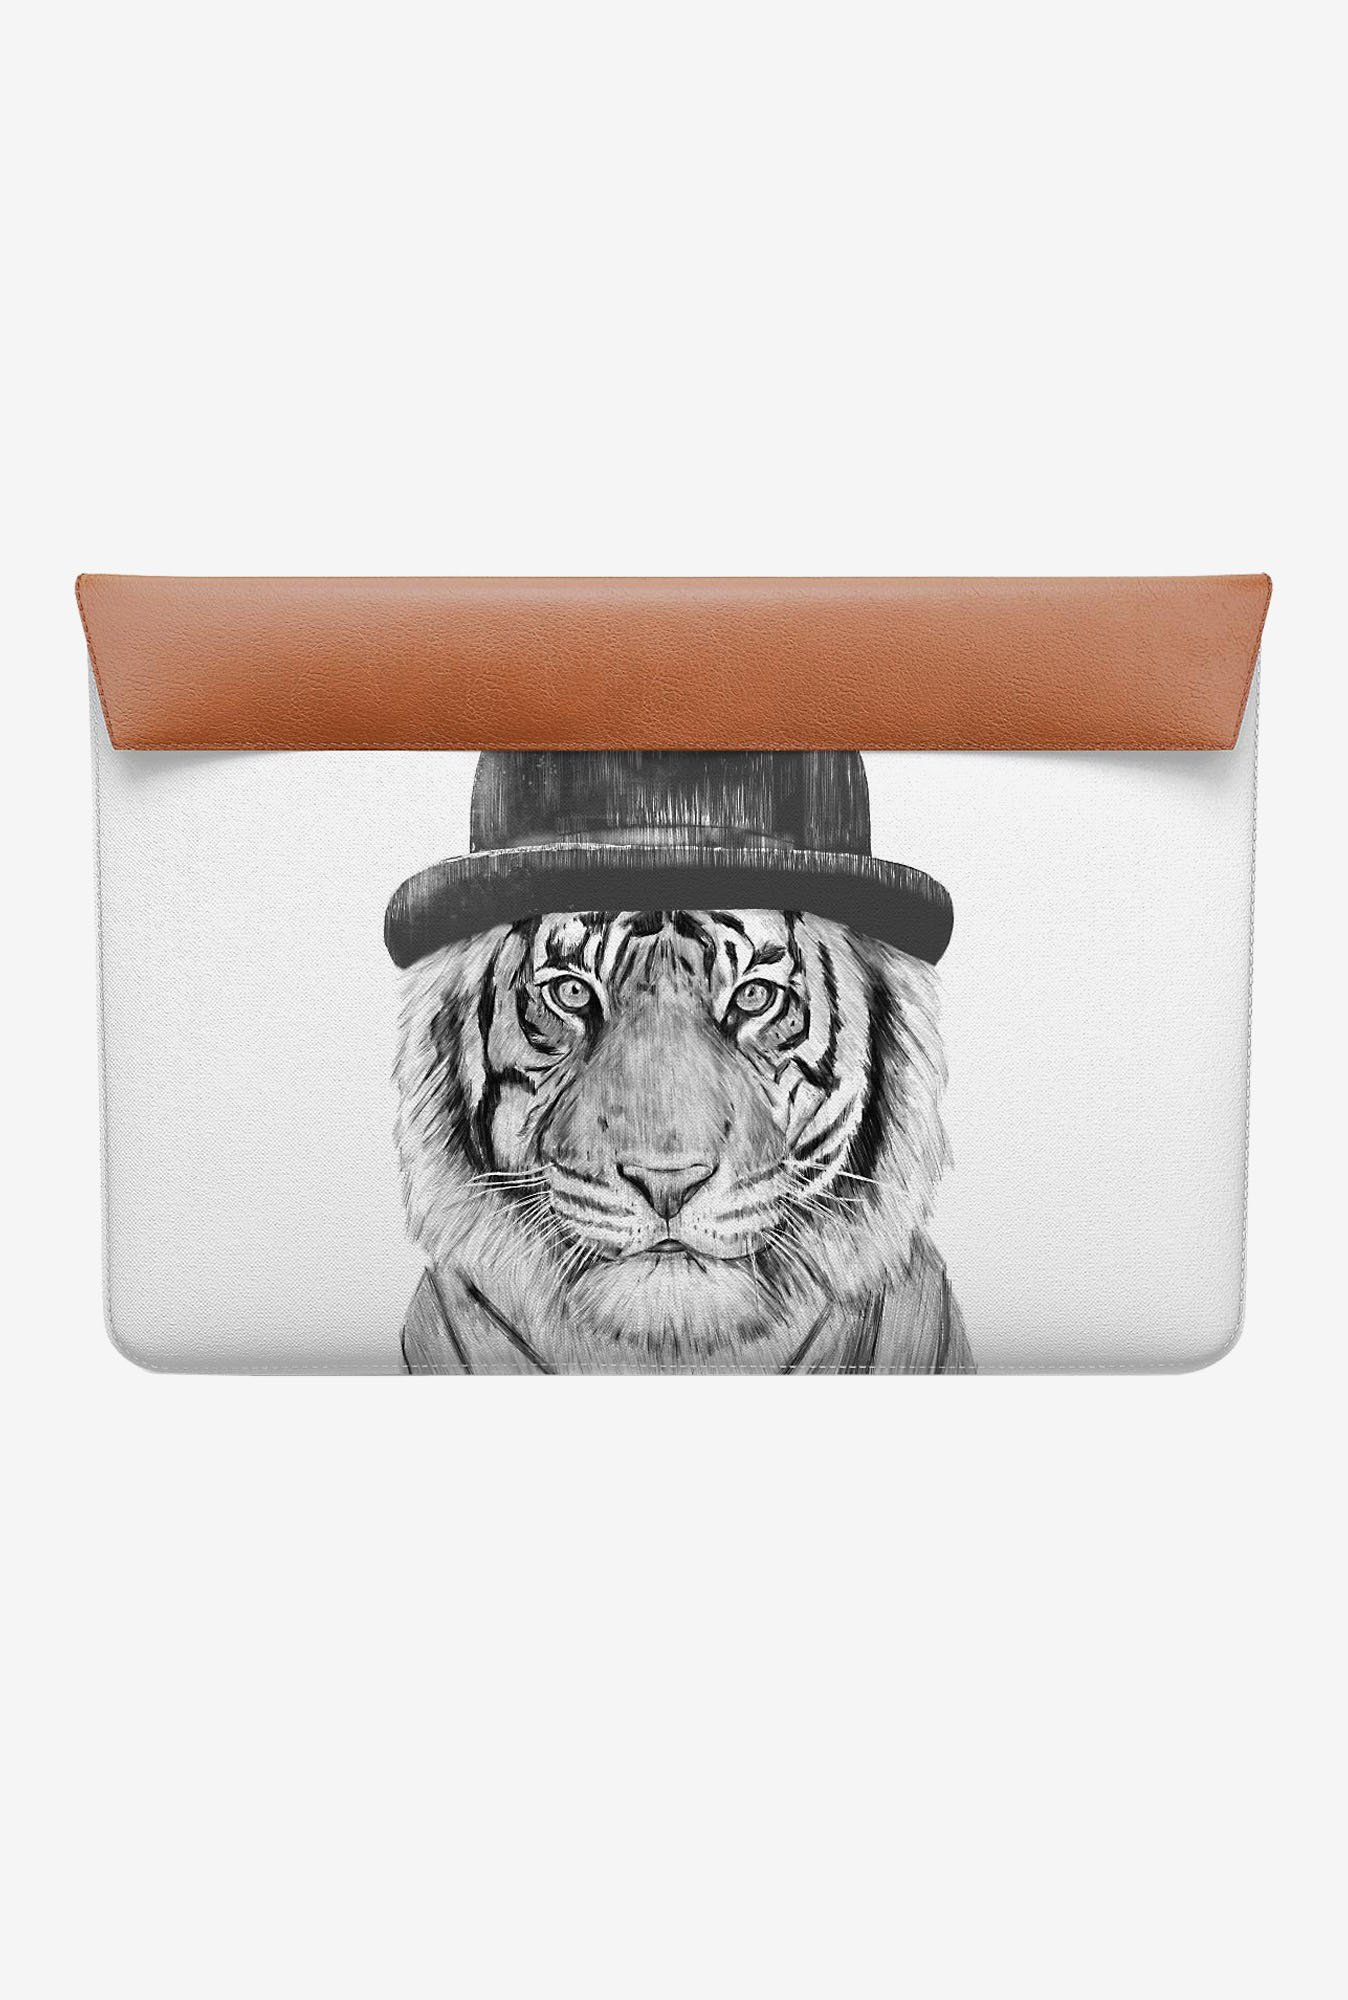 DailyObjects Welcome Jungle MacBook Air 11 Envelope Sleeve